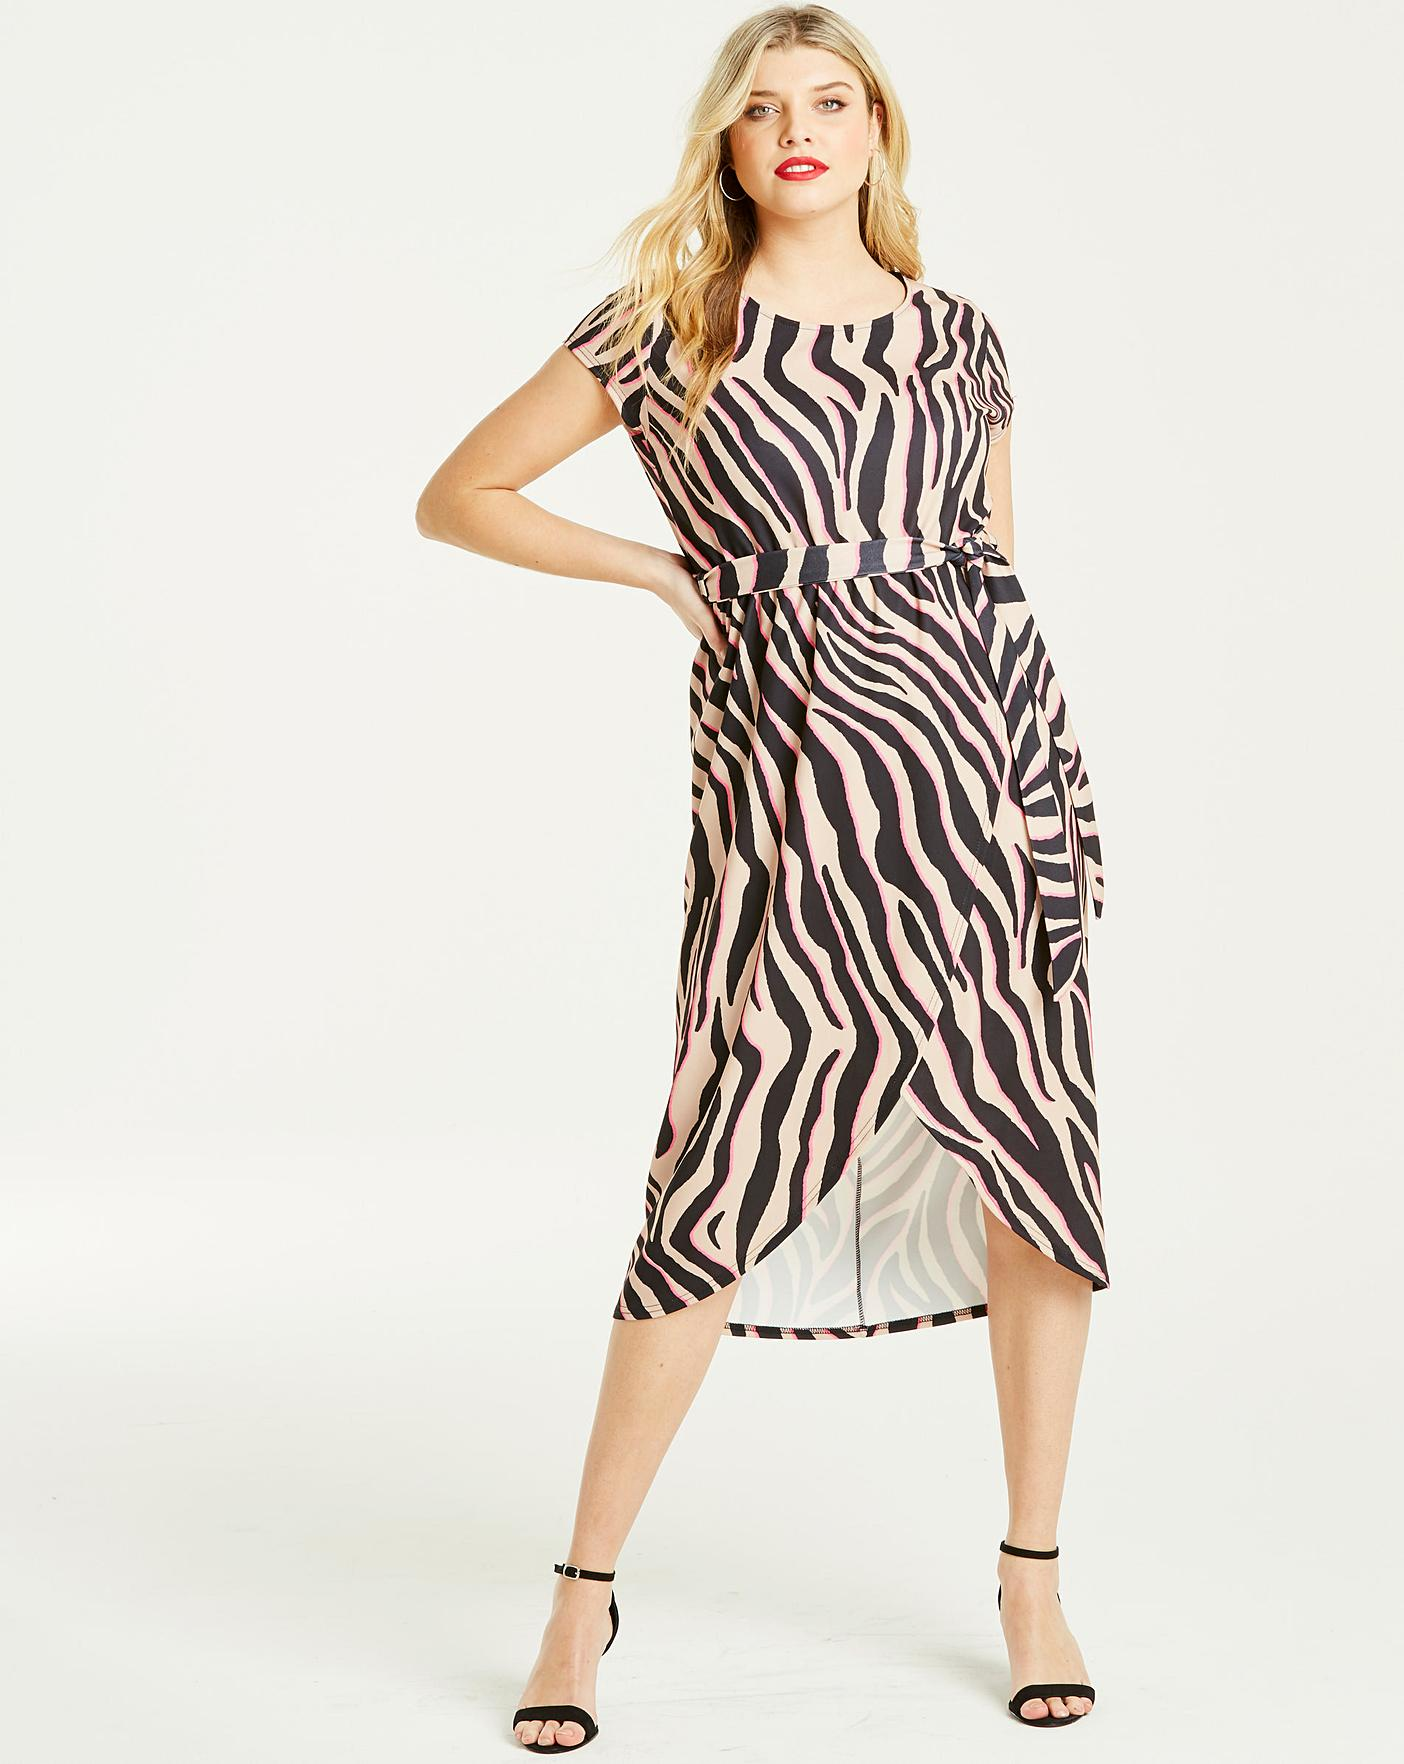 f4030cdc54 Quiz Curve Neon Animal Print Dress